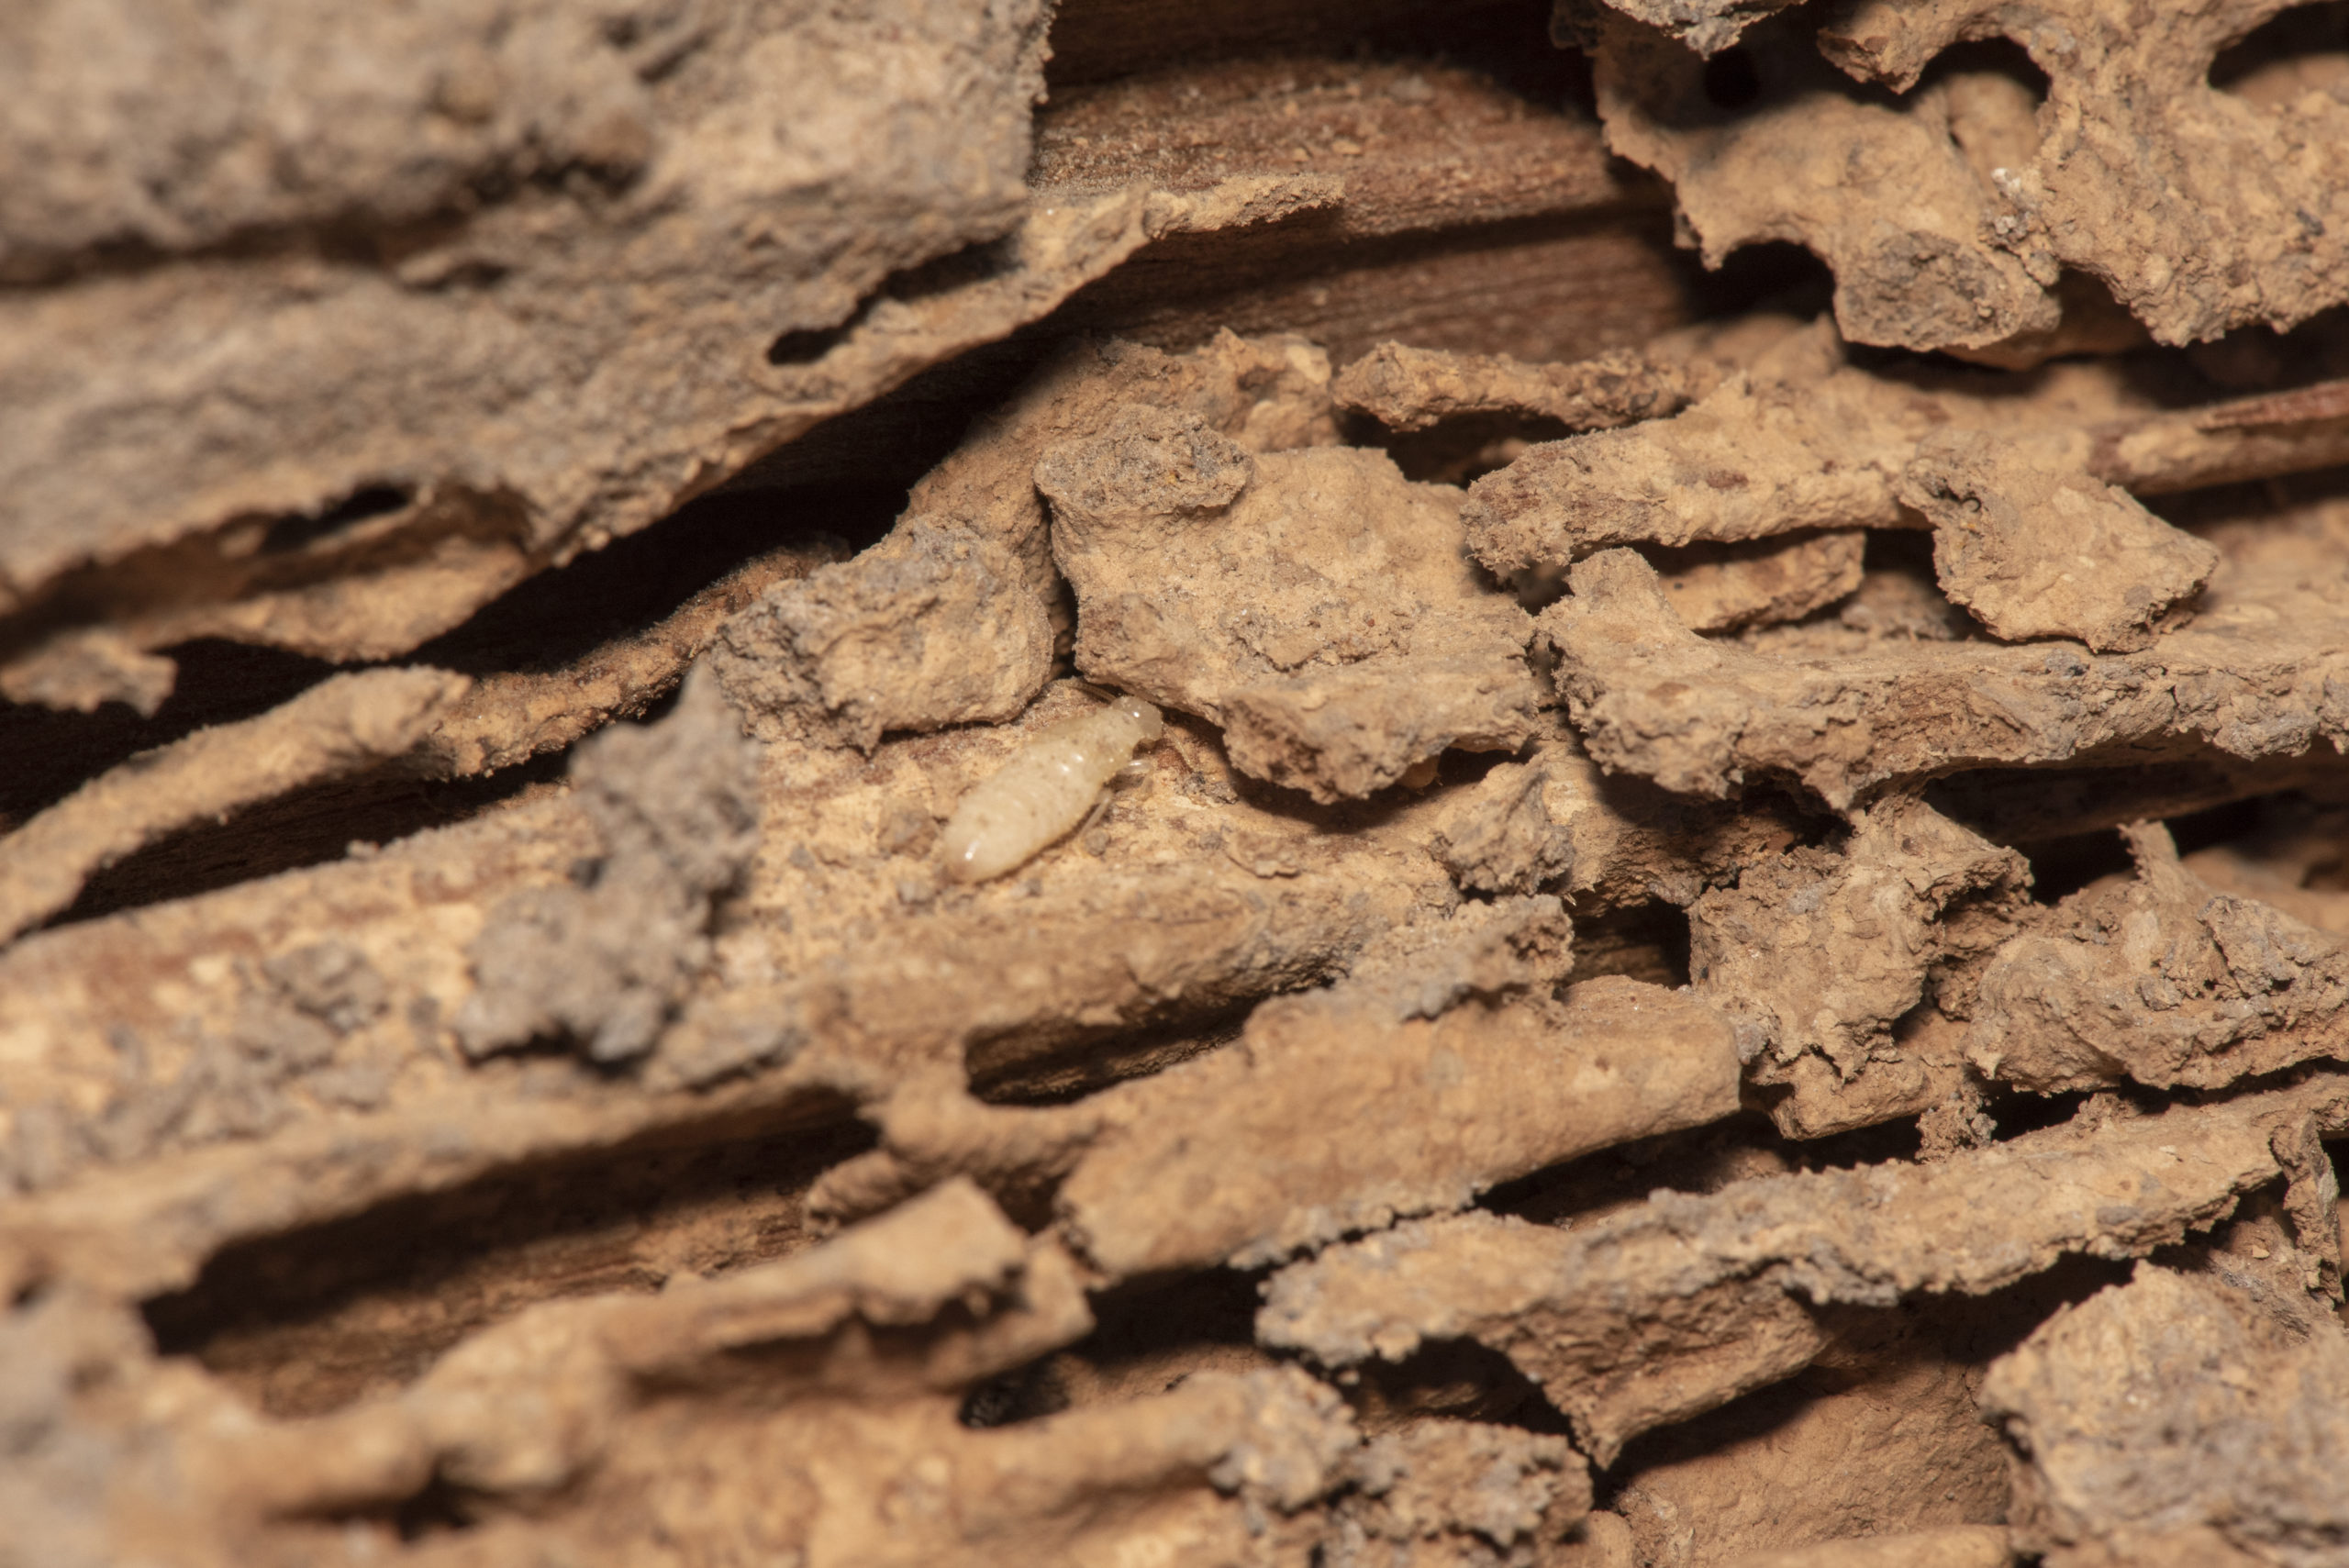 Traces of termites eat wood,animals that destroy wood.